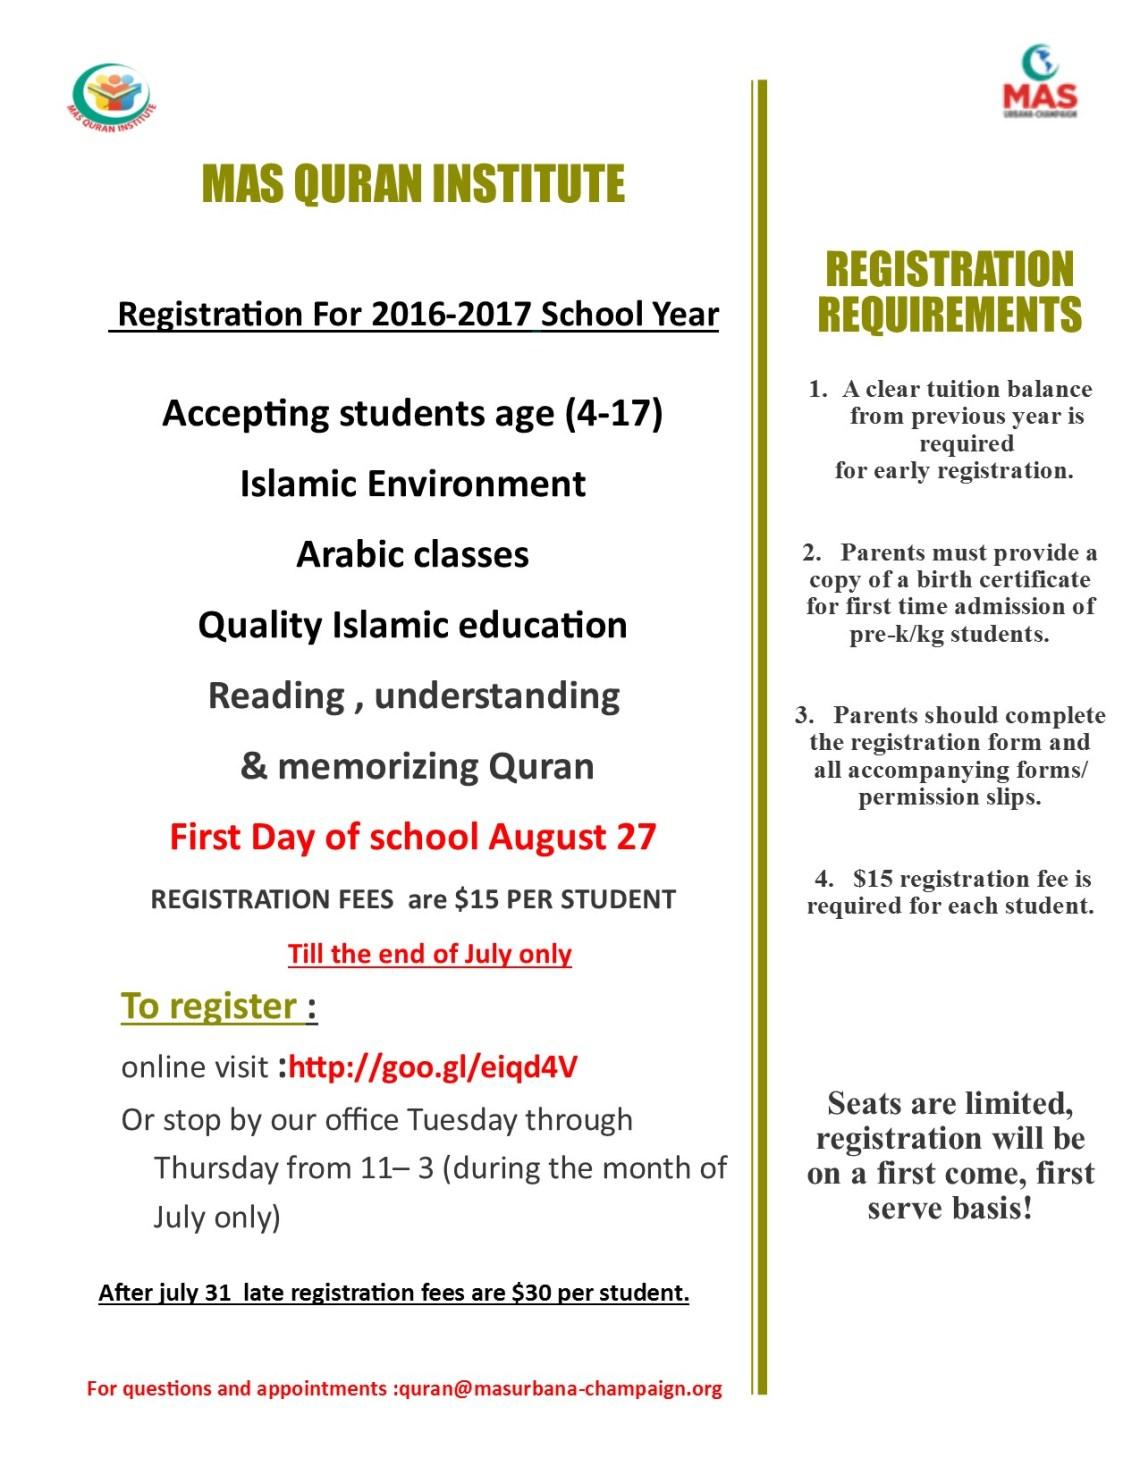 early registration 2015-2016